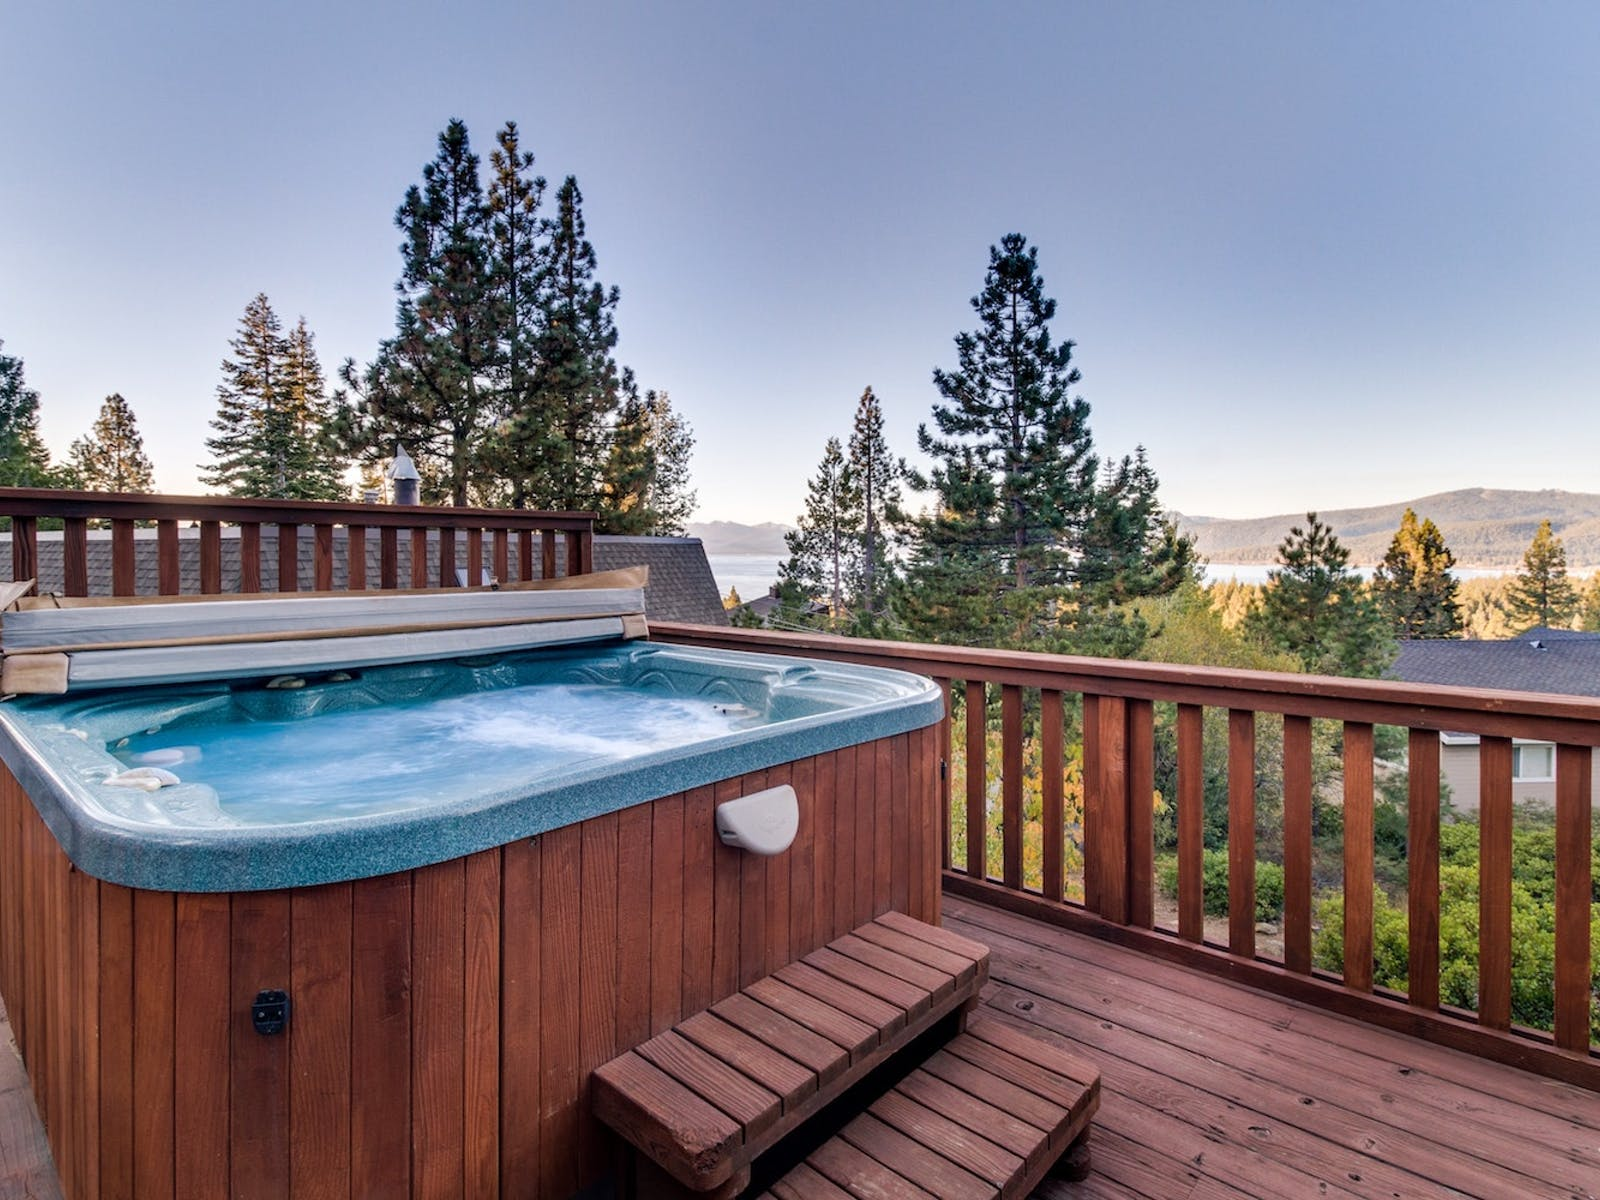 Vacation rental in Lake Tahoe with hot tub and lake views